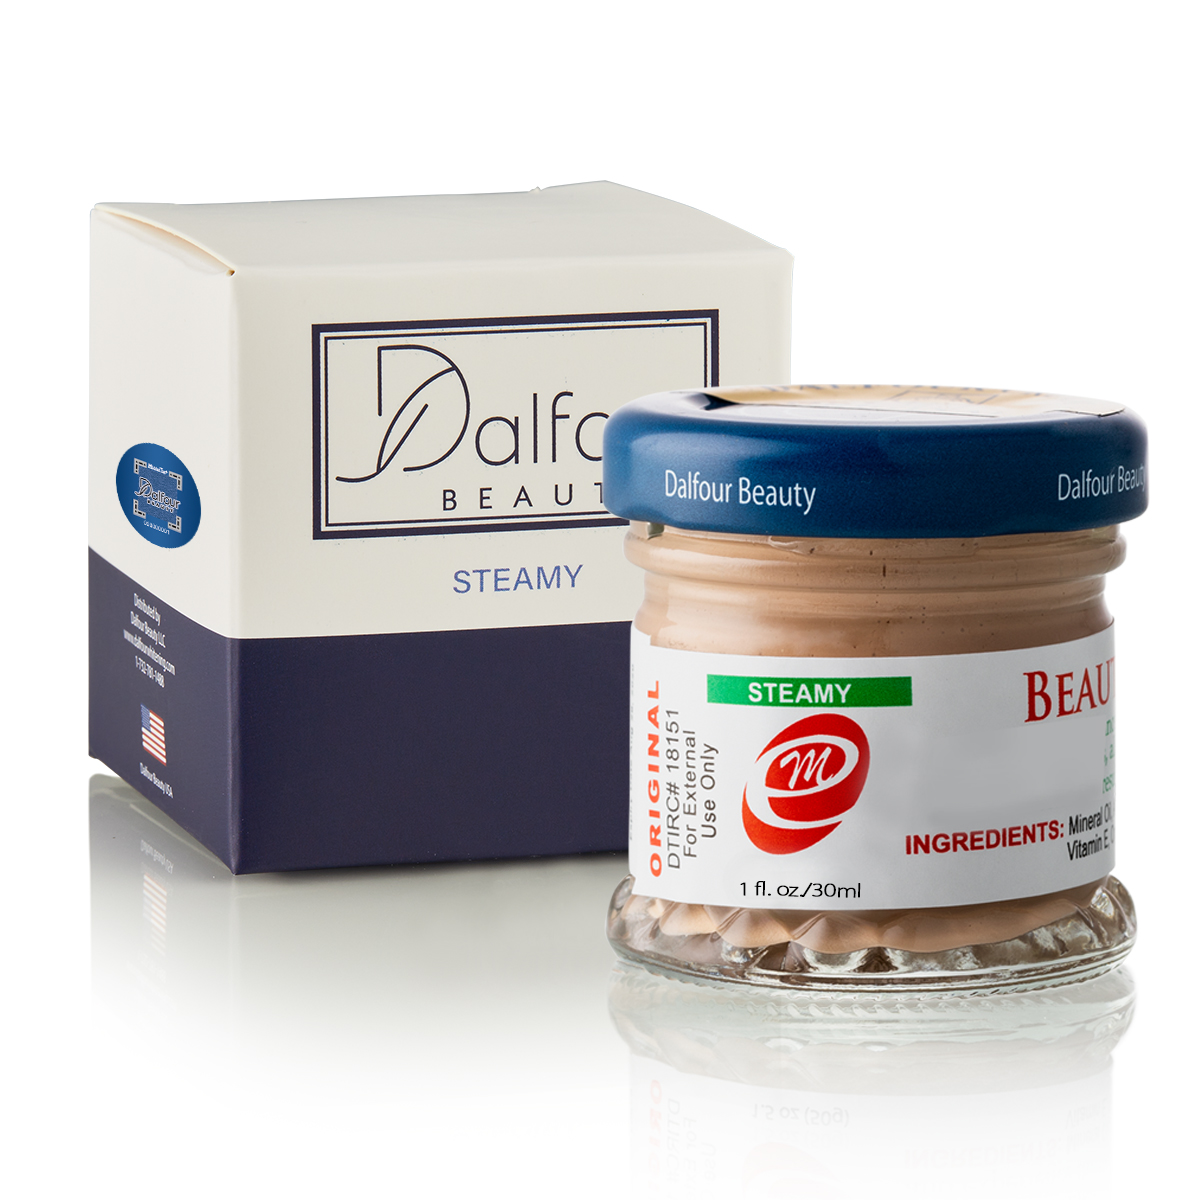 Authentic Dalfour Beauty Gold Seal Brightening Cream Steam Cream For Oily & Combination Skin